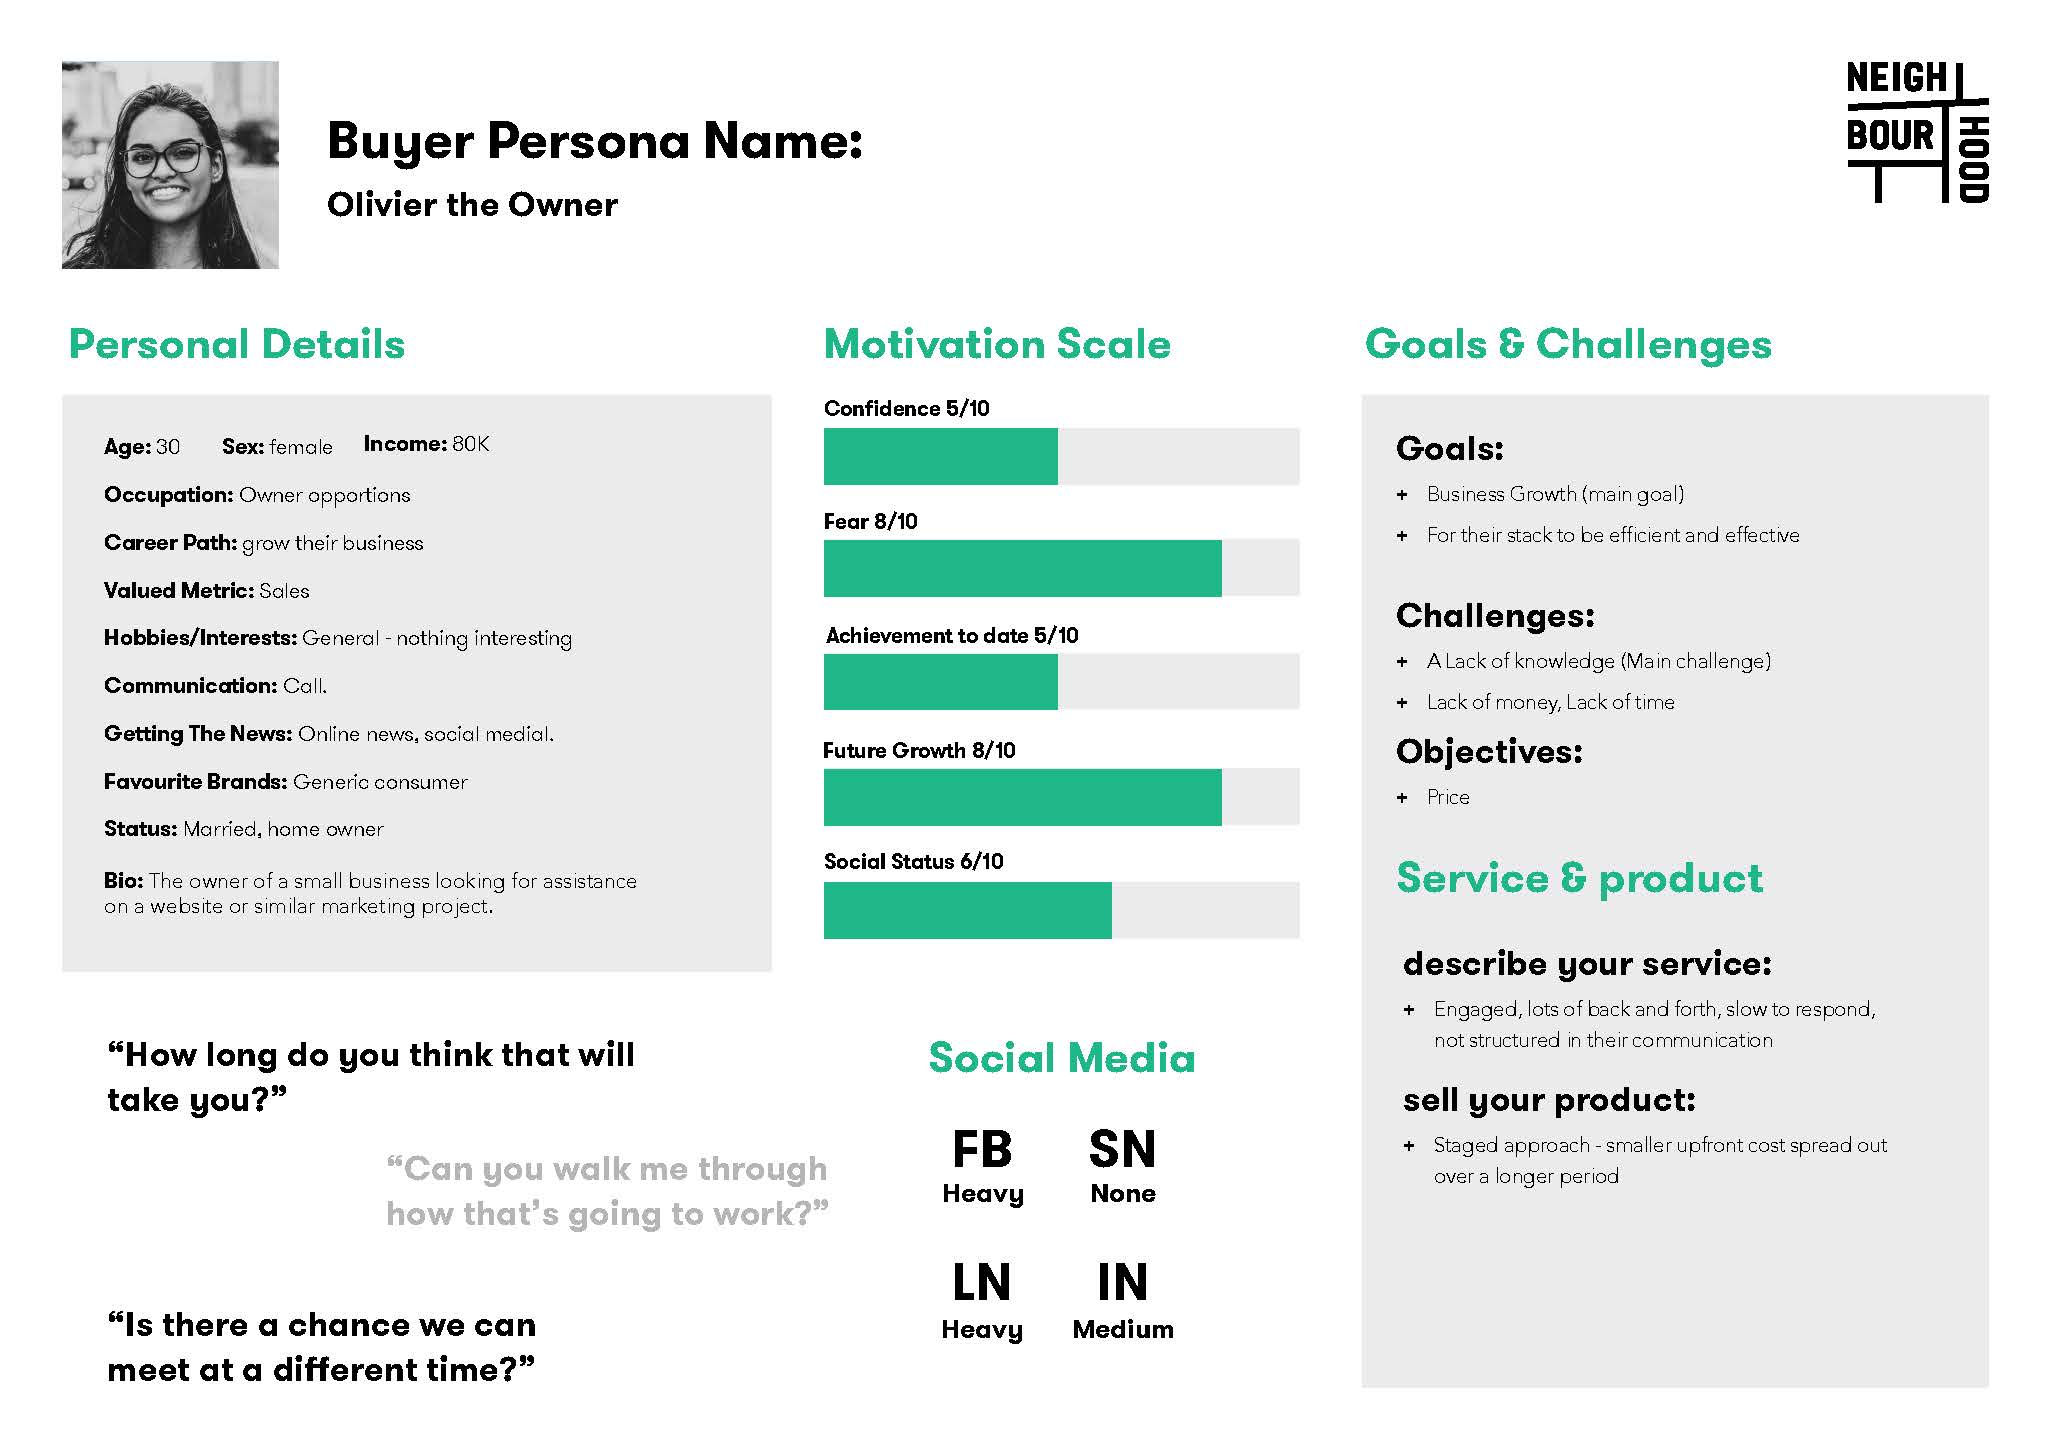 NBH - Buyer Personas V1_Page_4